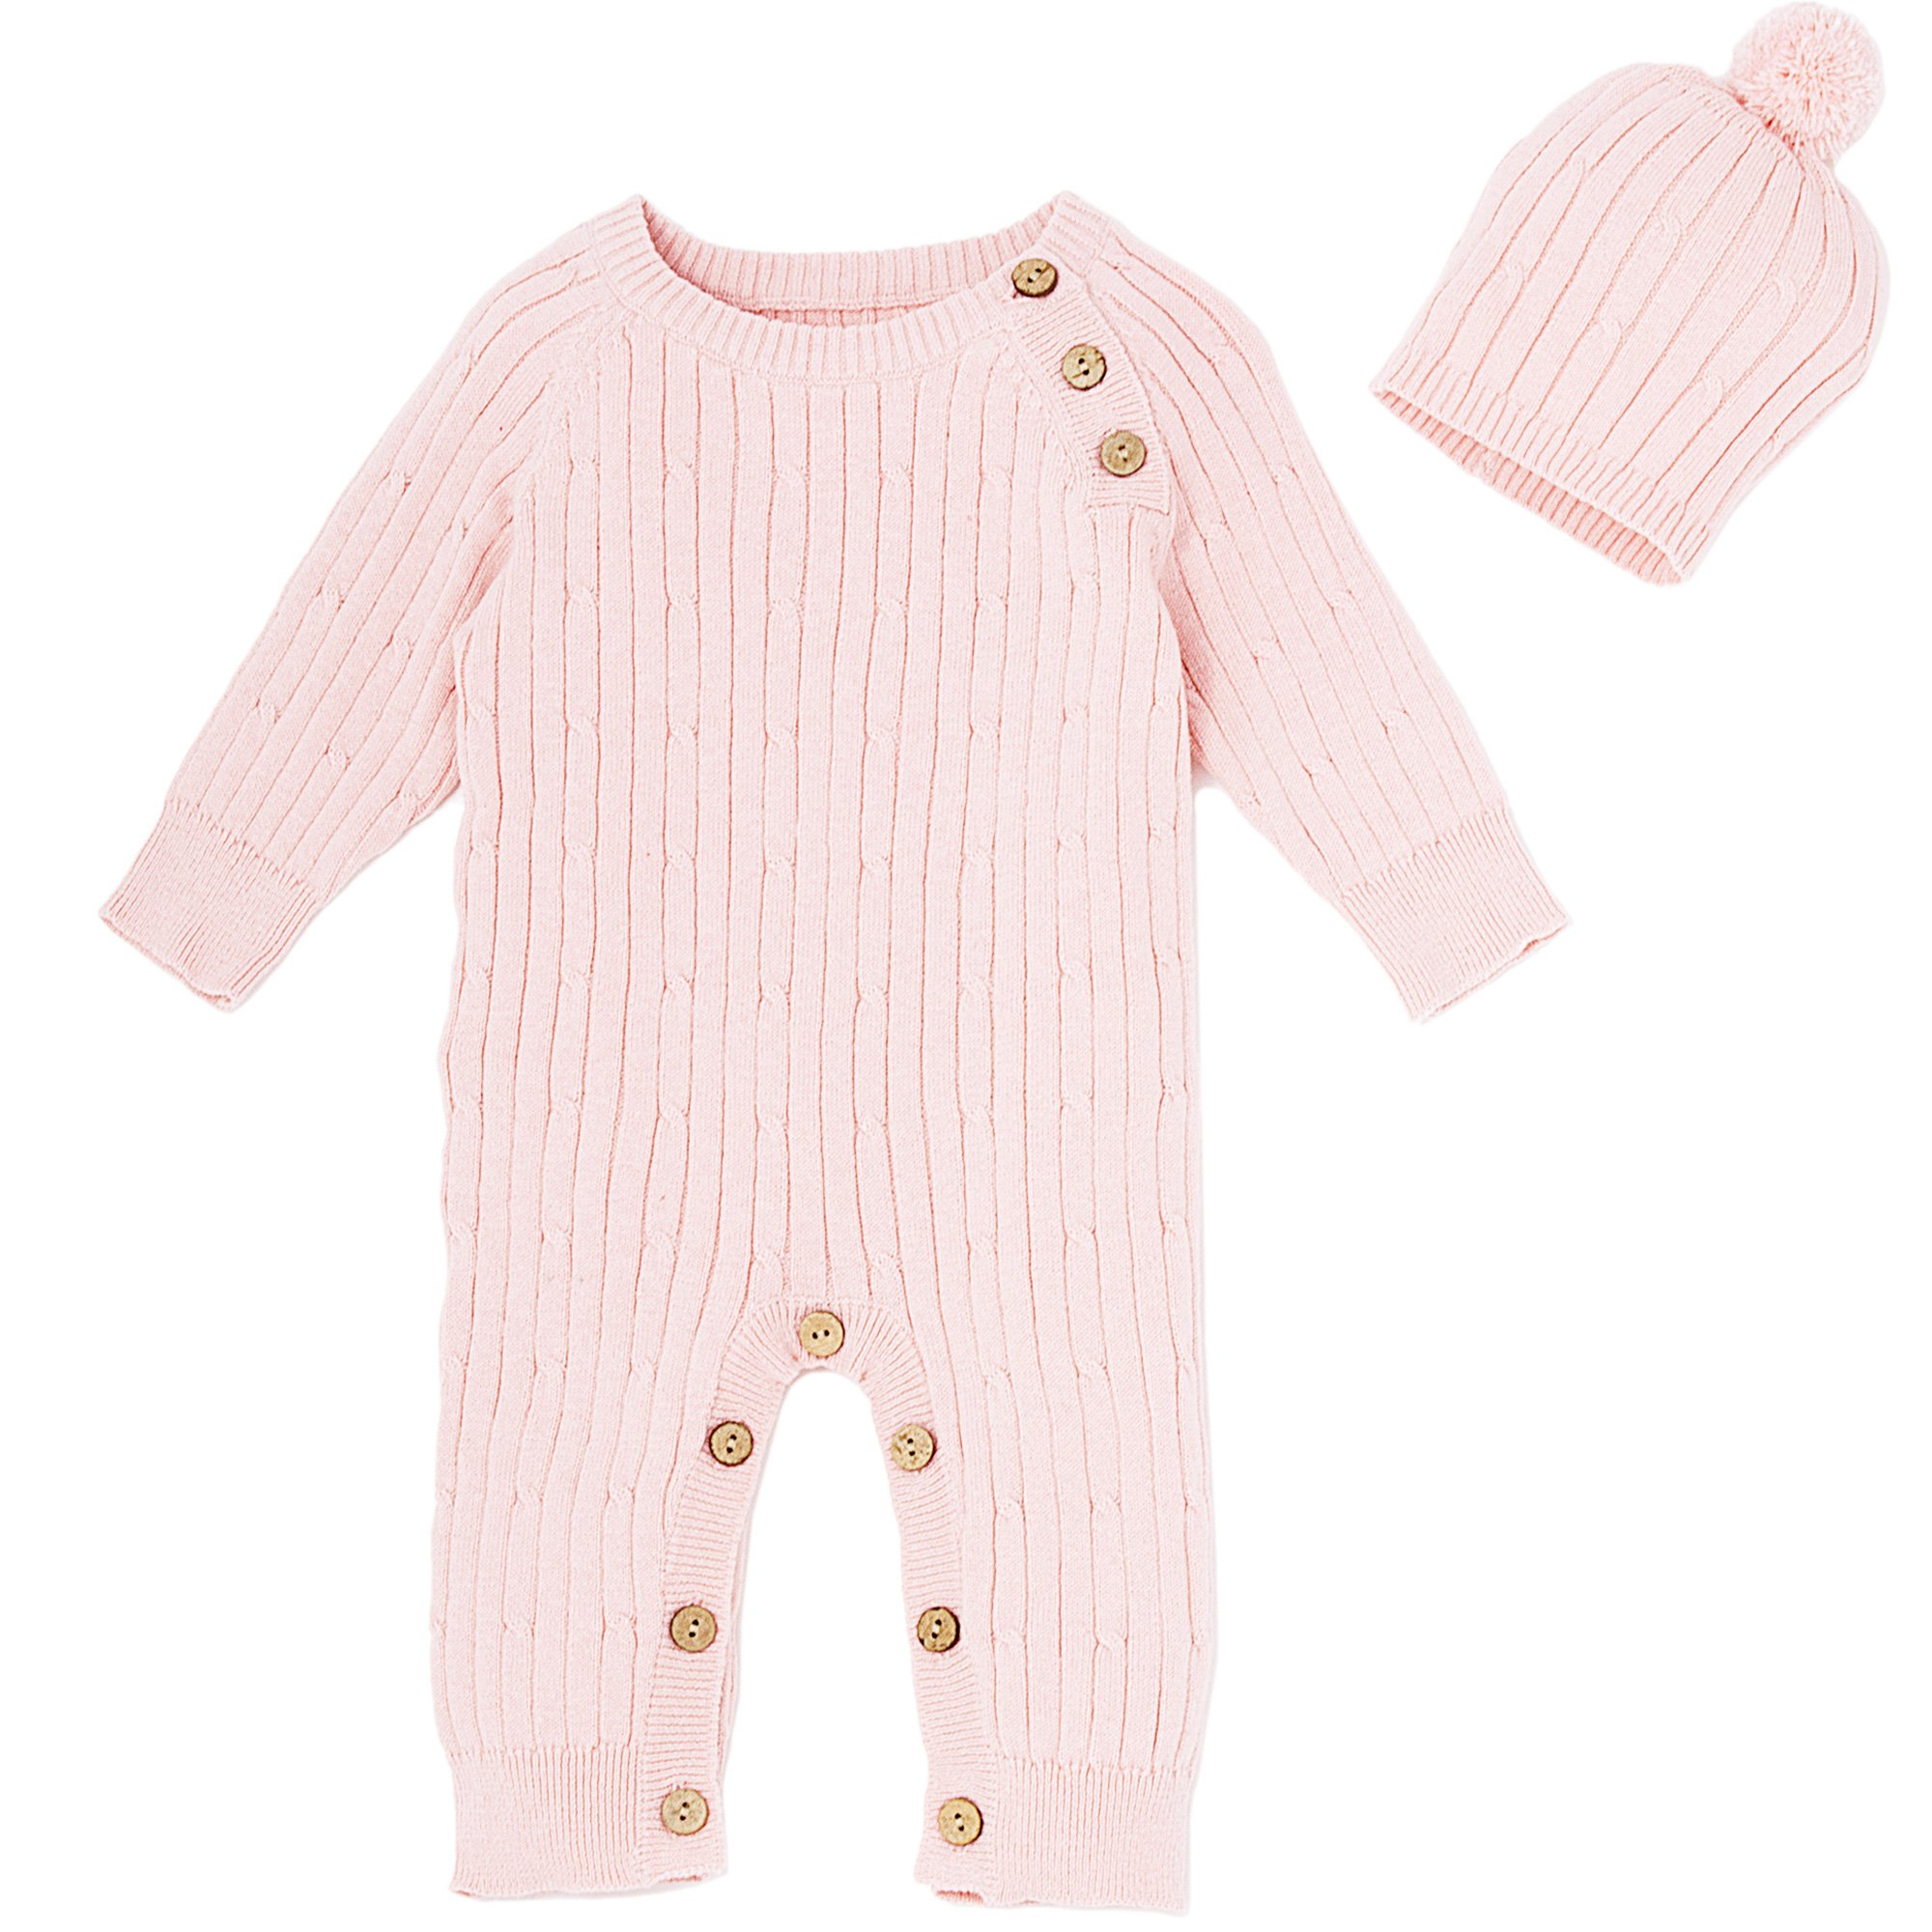 323da1c1e Le Top Bébé Pretty in Pink Cable Knit Romper and Hat Set for Newborn and  Baby Girls